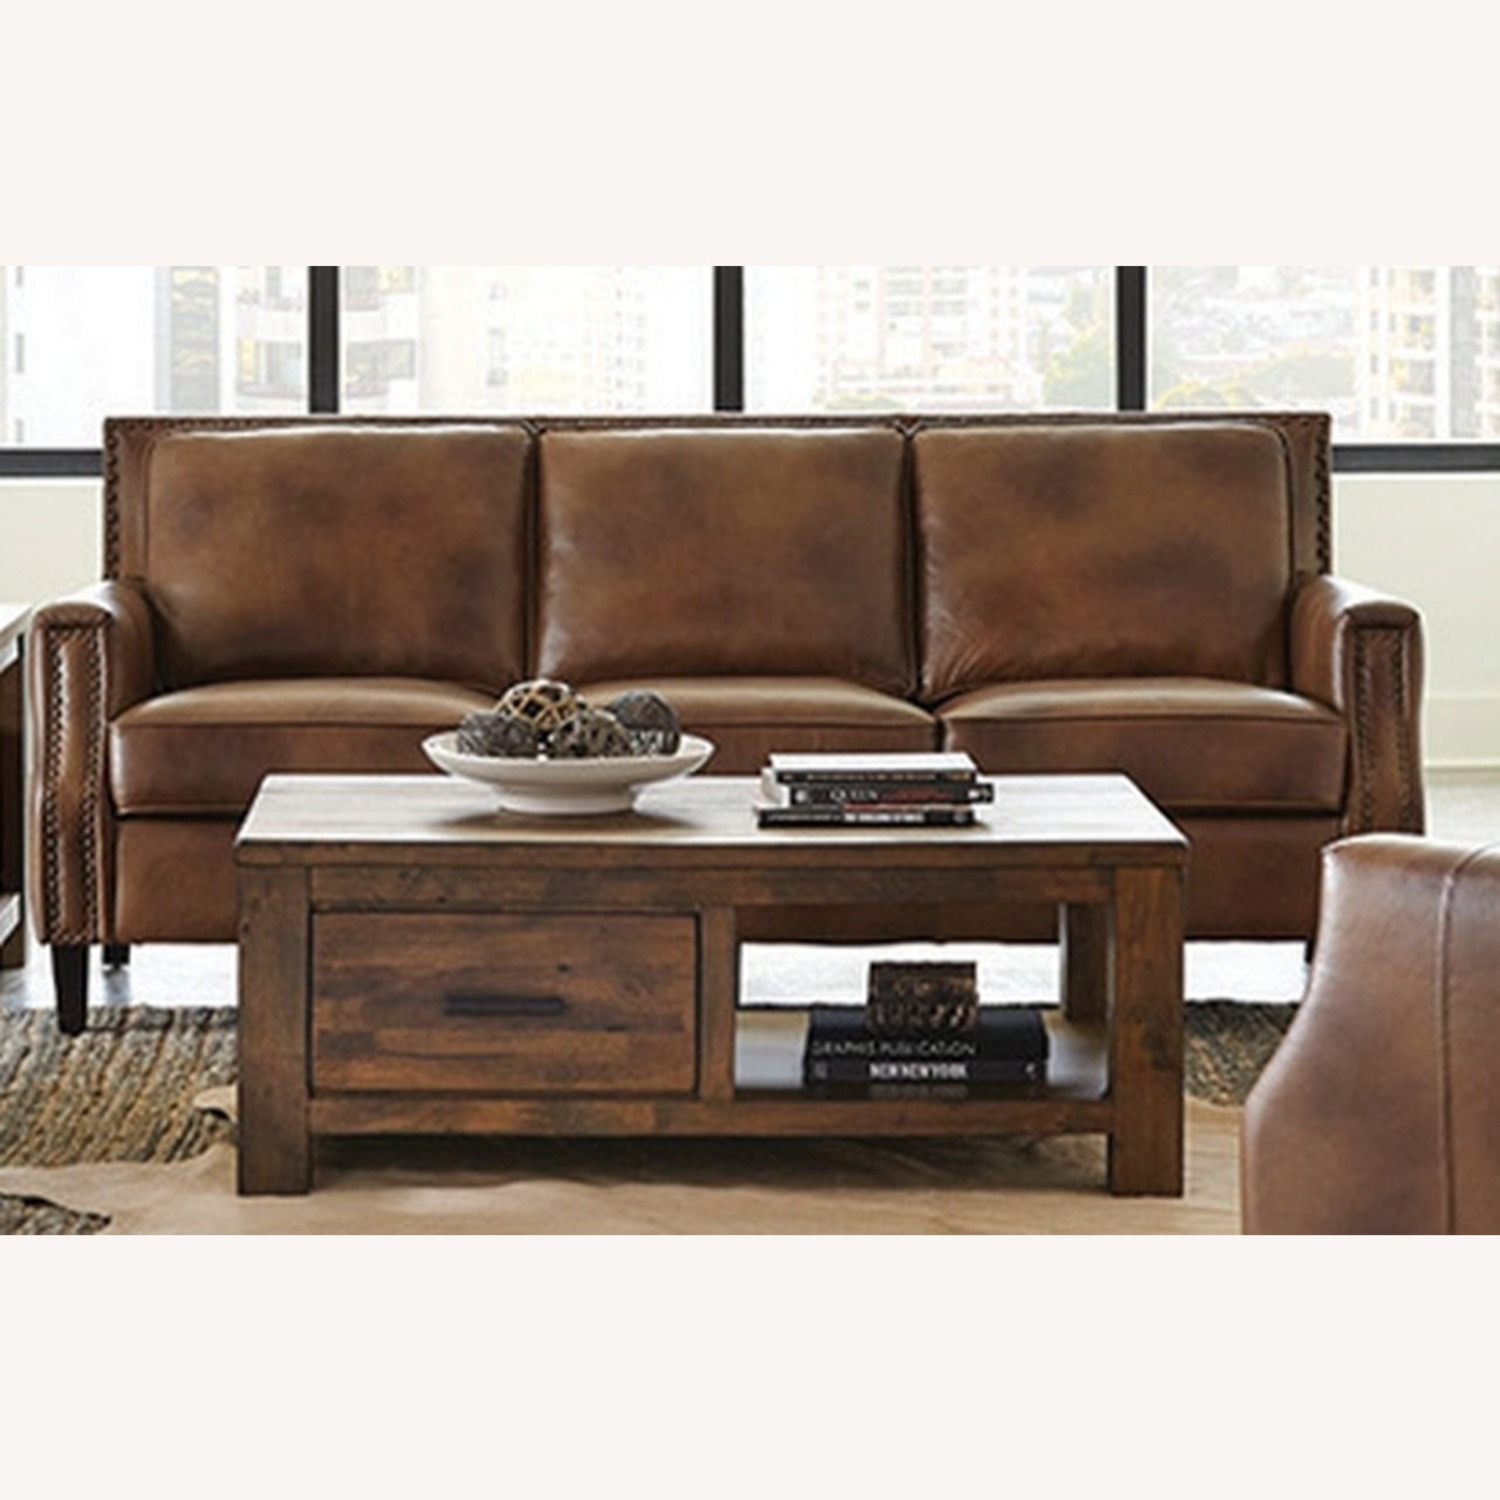 Sofa In Brown Leather Upholstery - image-1